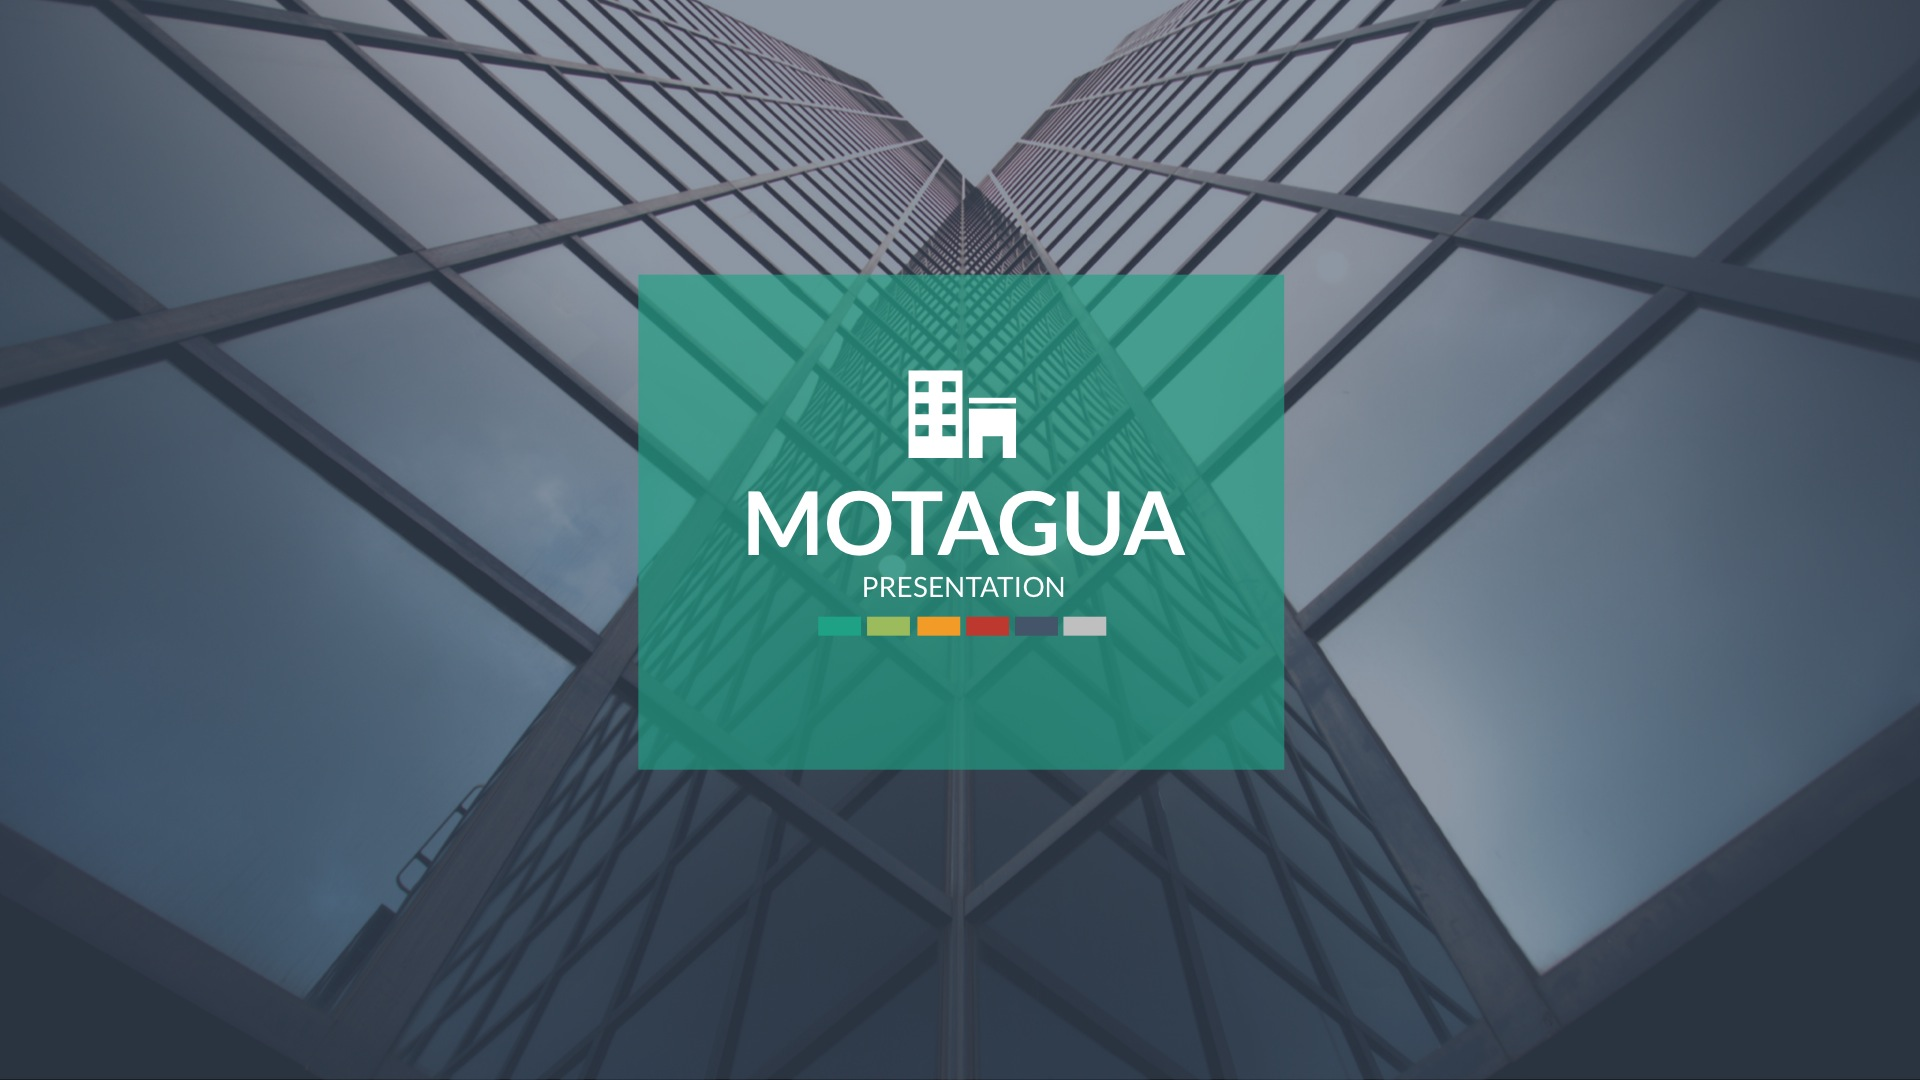 10 powerpoint business templates to wow your audience the multipurpose powerpoint business template from motagua accmission